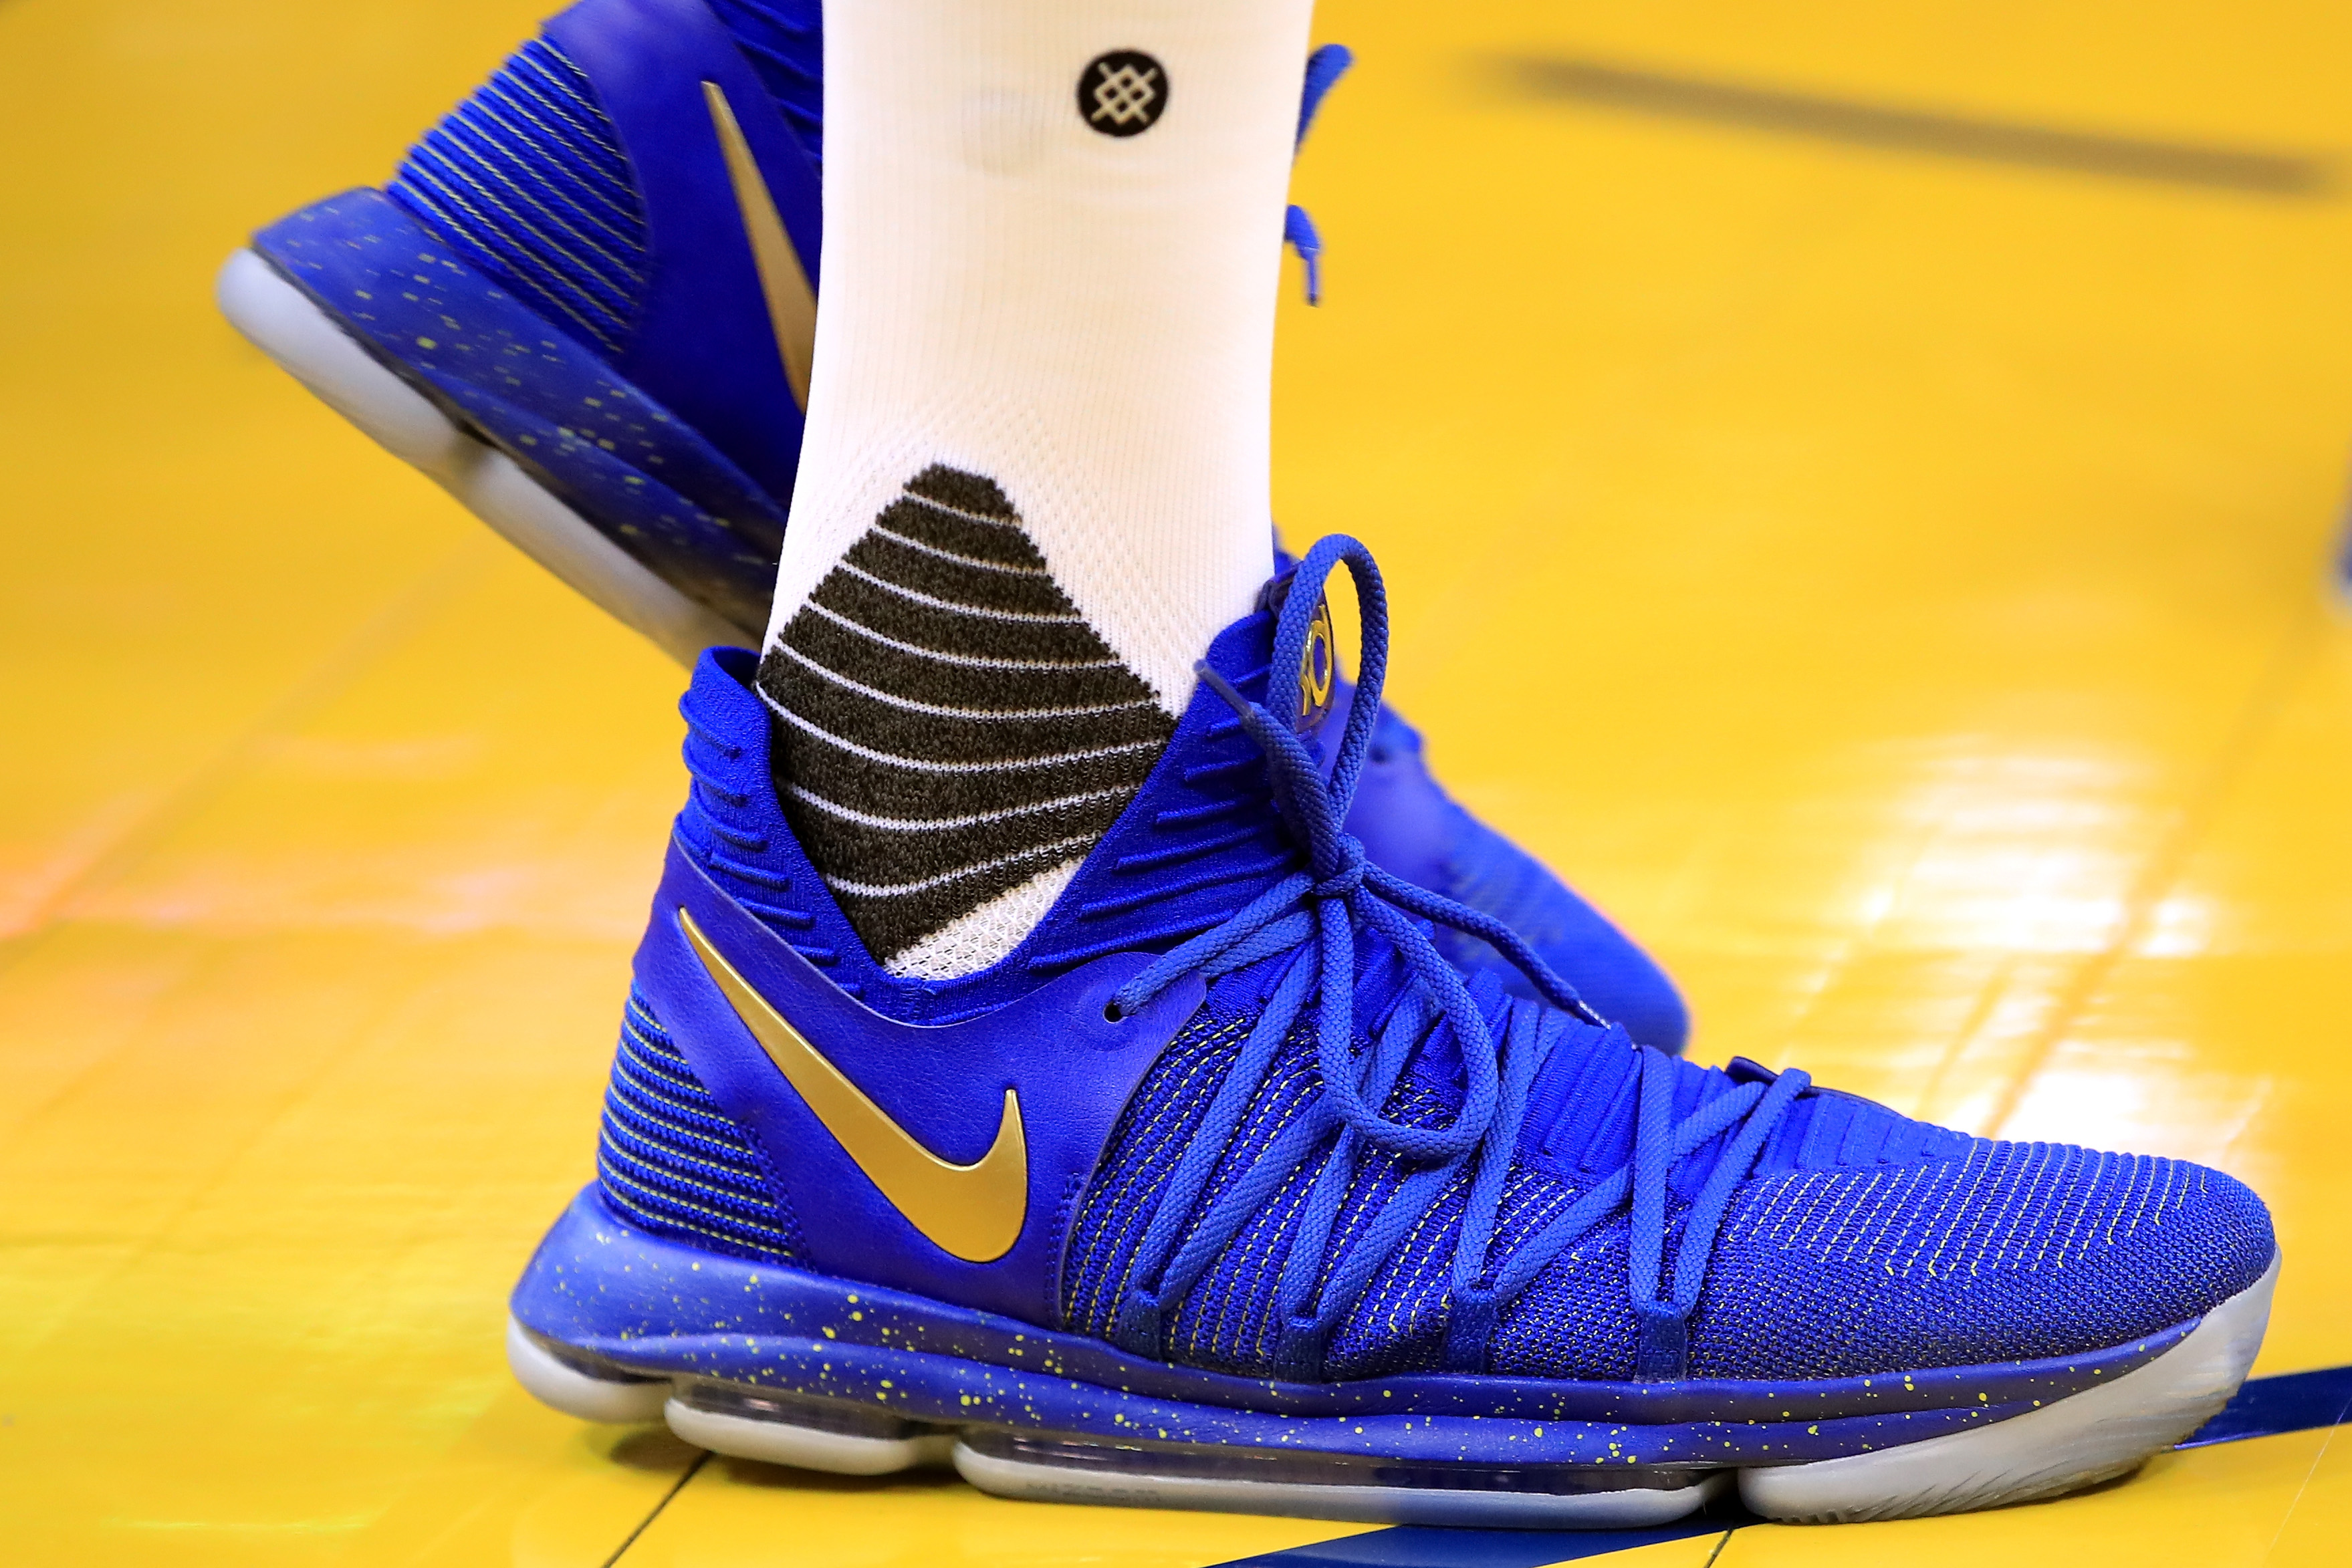 Kevin Durant Shoes: New KD 10's Launch